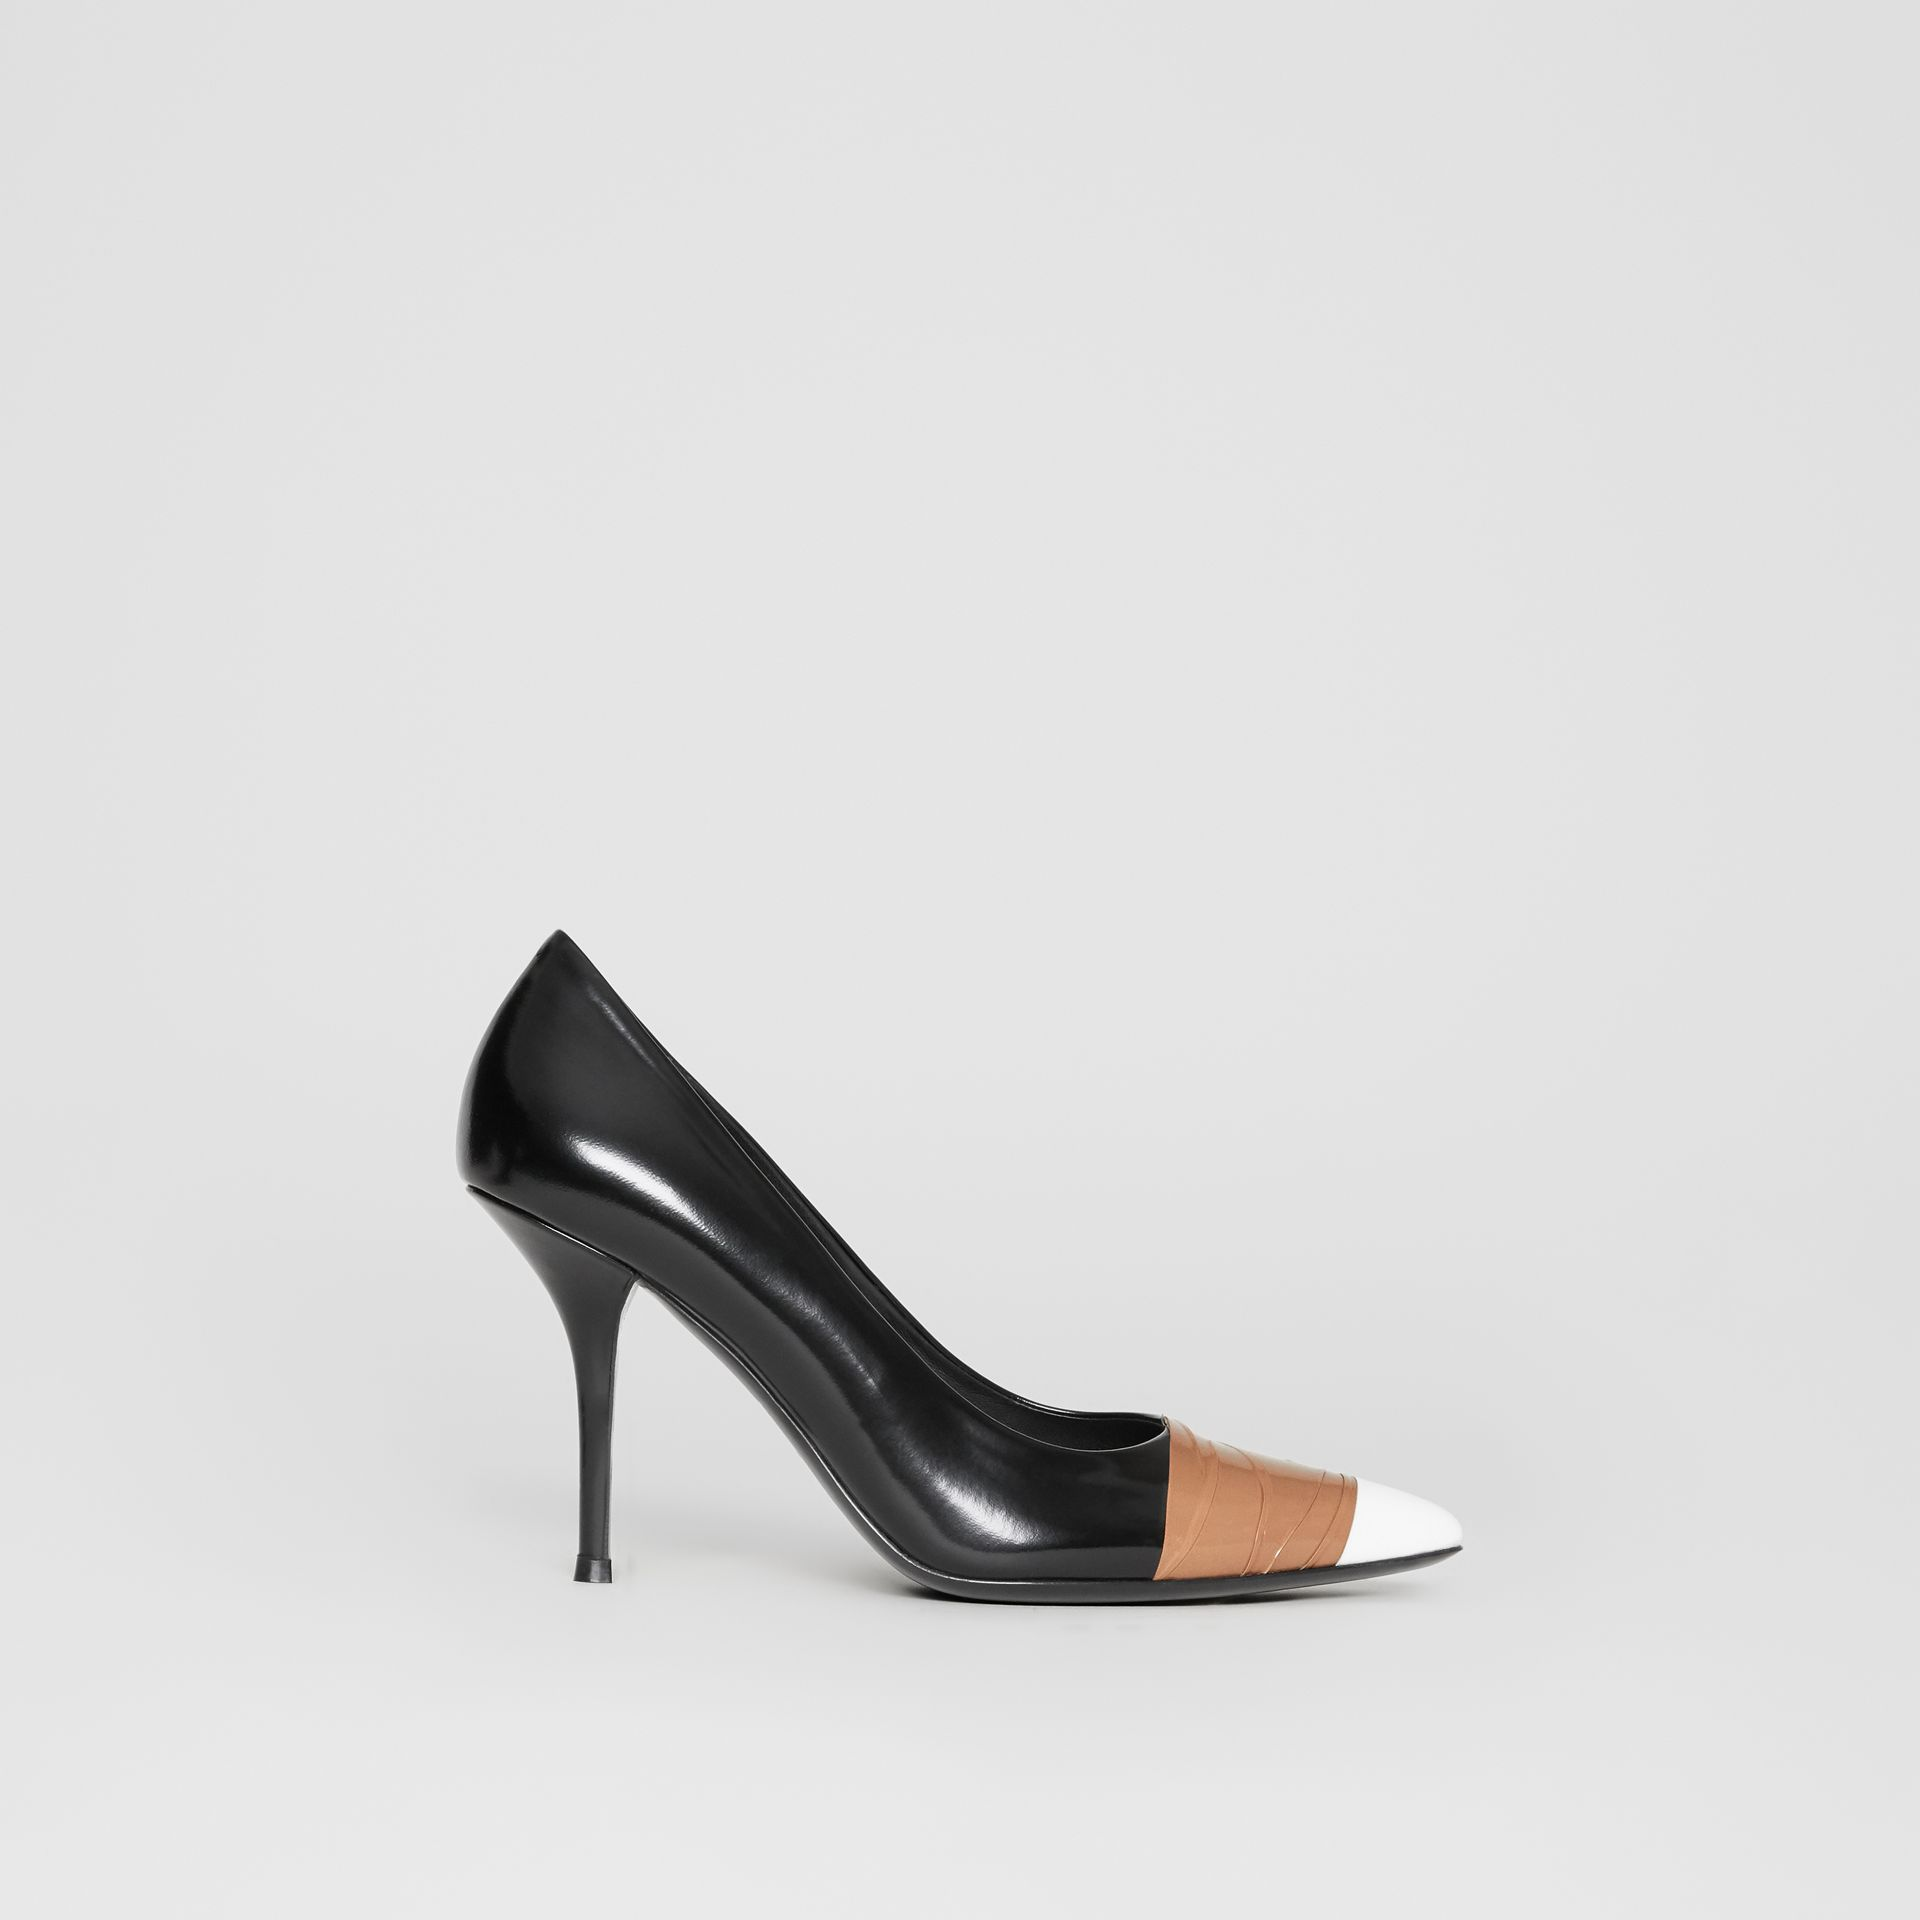 Tape Detail Leather Pumps in Black/optic White - Women | Burberry Canada - gallery image 5